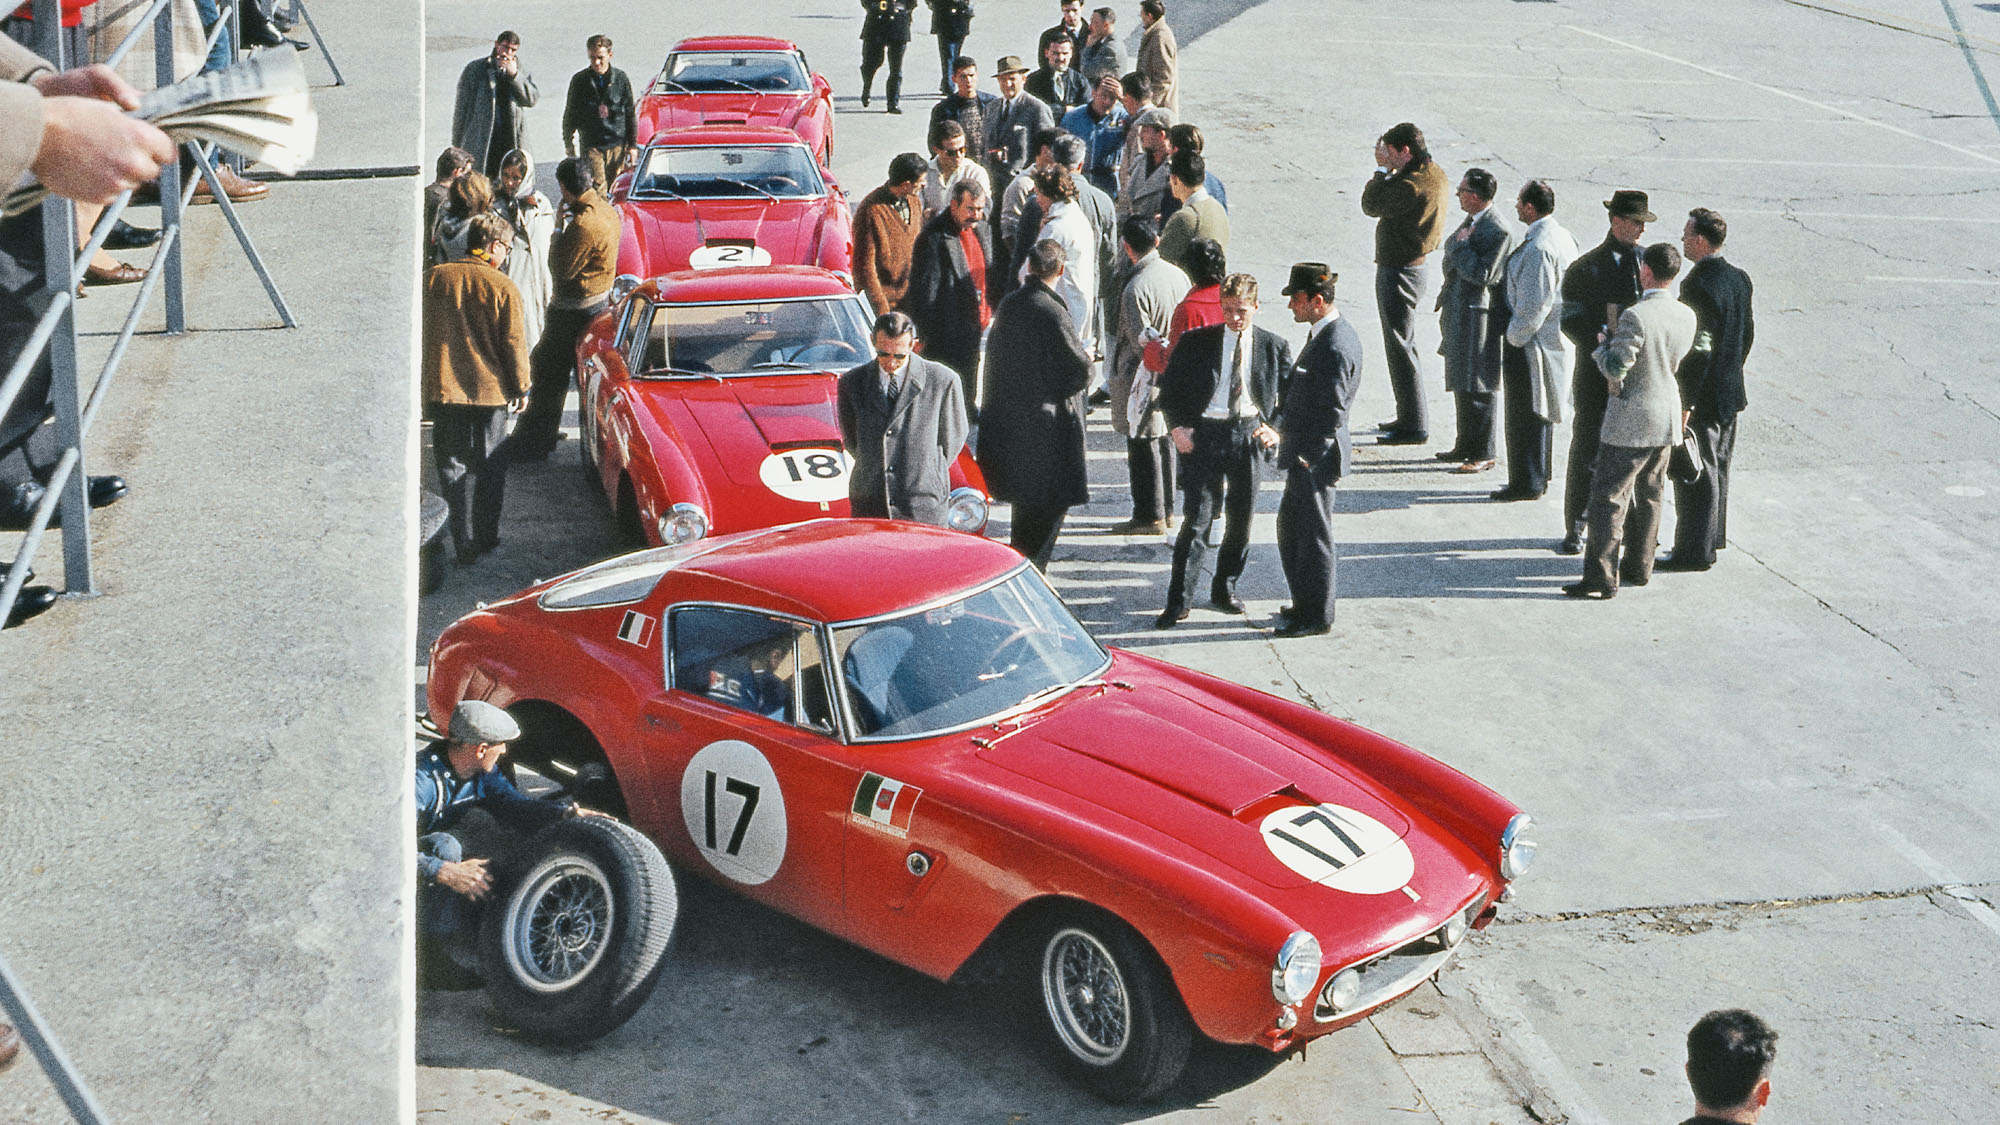 no fewer than four 250 GT SWBs sit in the Ferrari pits 1961